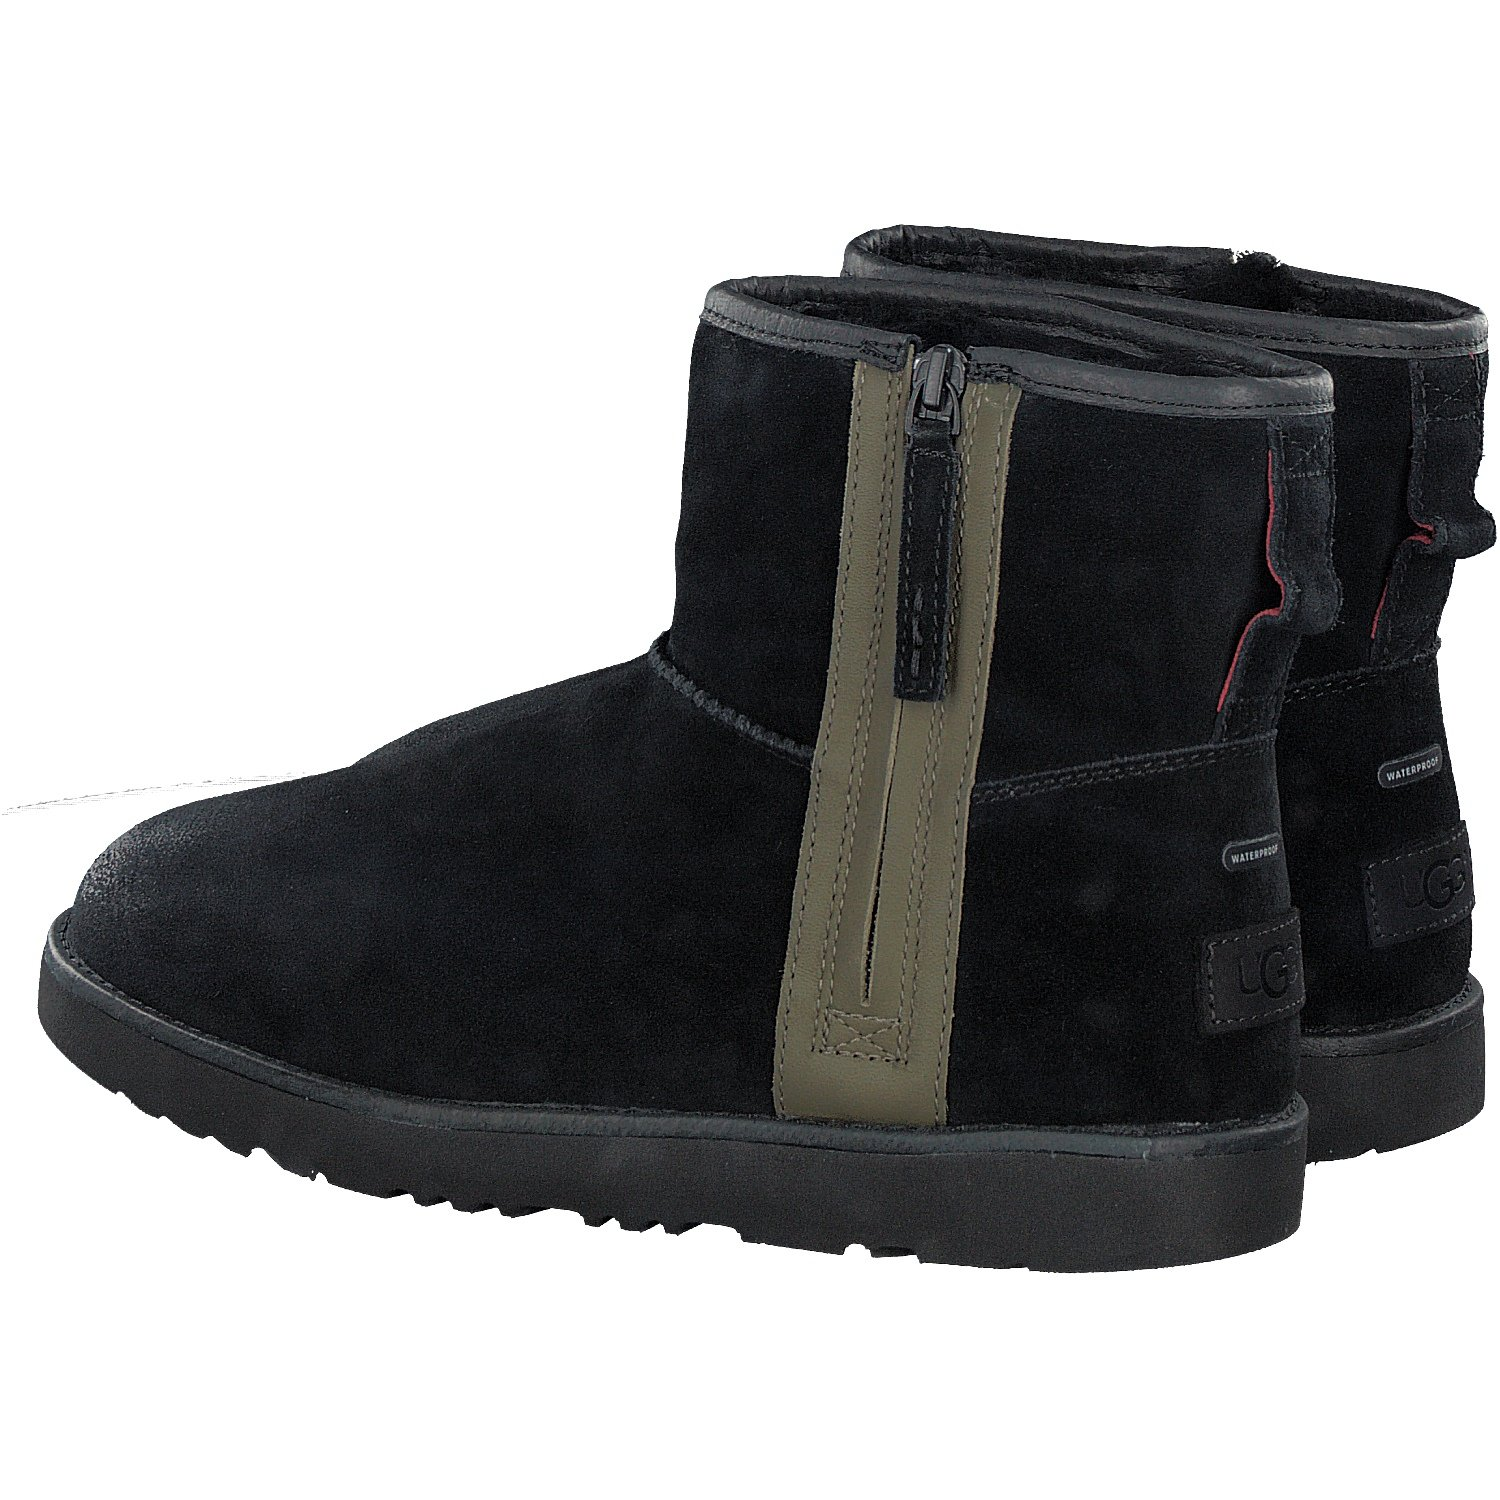 Reduced Ugg Classic Mini Zip Waterproof Boot Locker Cea77 632da